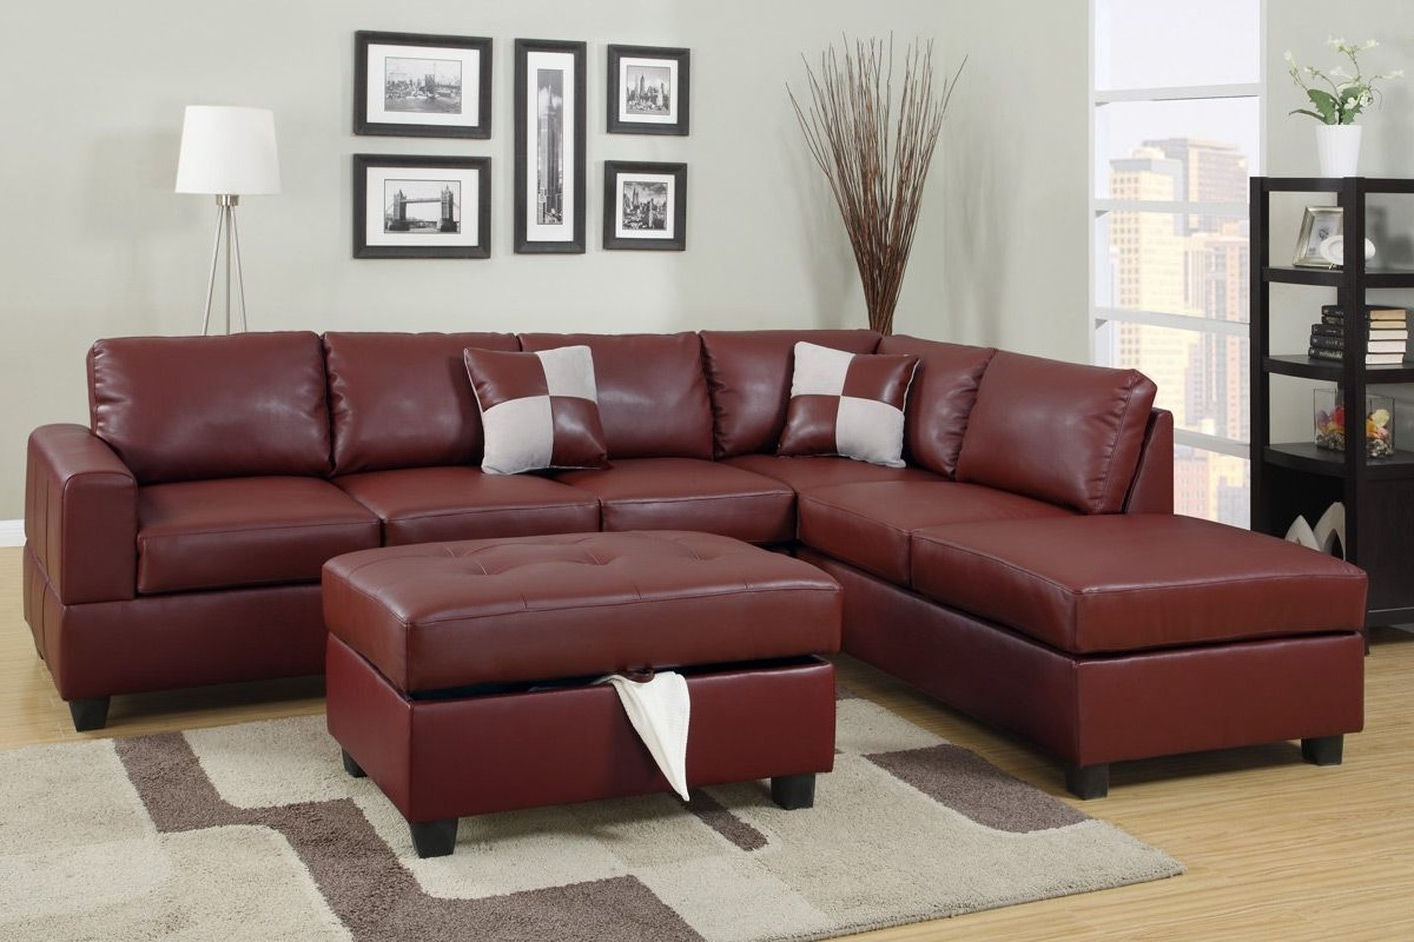 April Red Leather Sectional Sofa And Ottoman – Steal A Sofa Inside Well Liked Red Sectional Sofas With Ottoman (View 6 of 15)